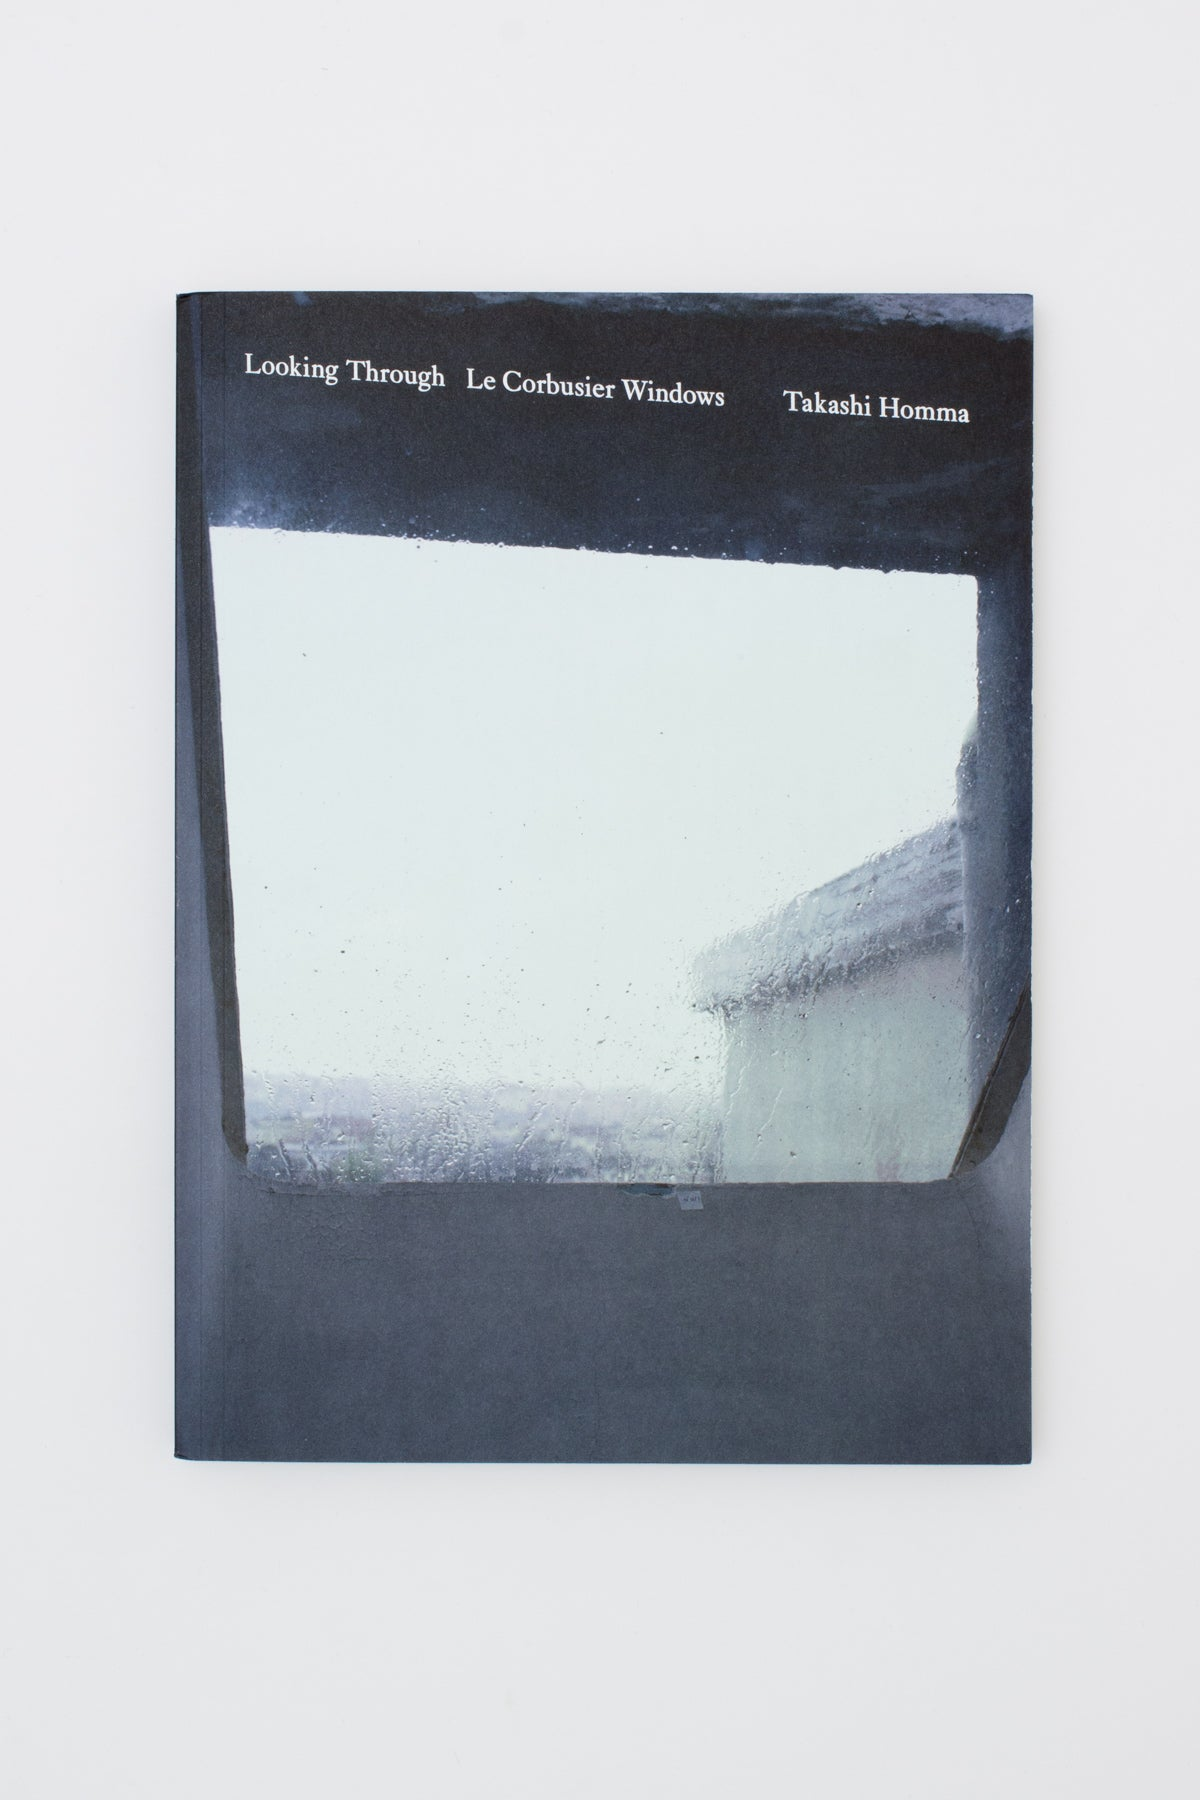 Looking Through / Le Corbusier Windows - Takashi Homma